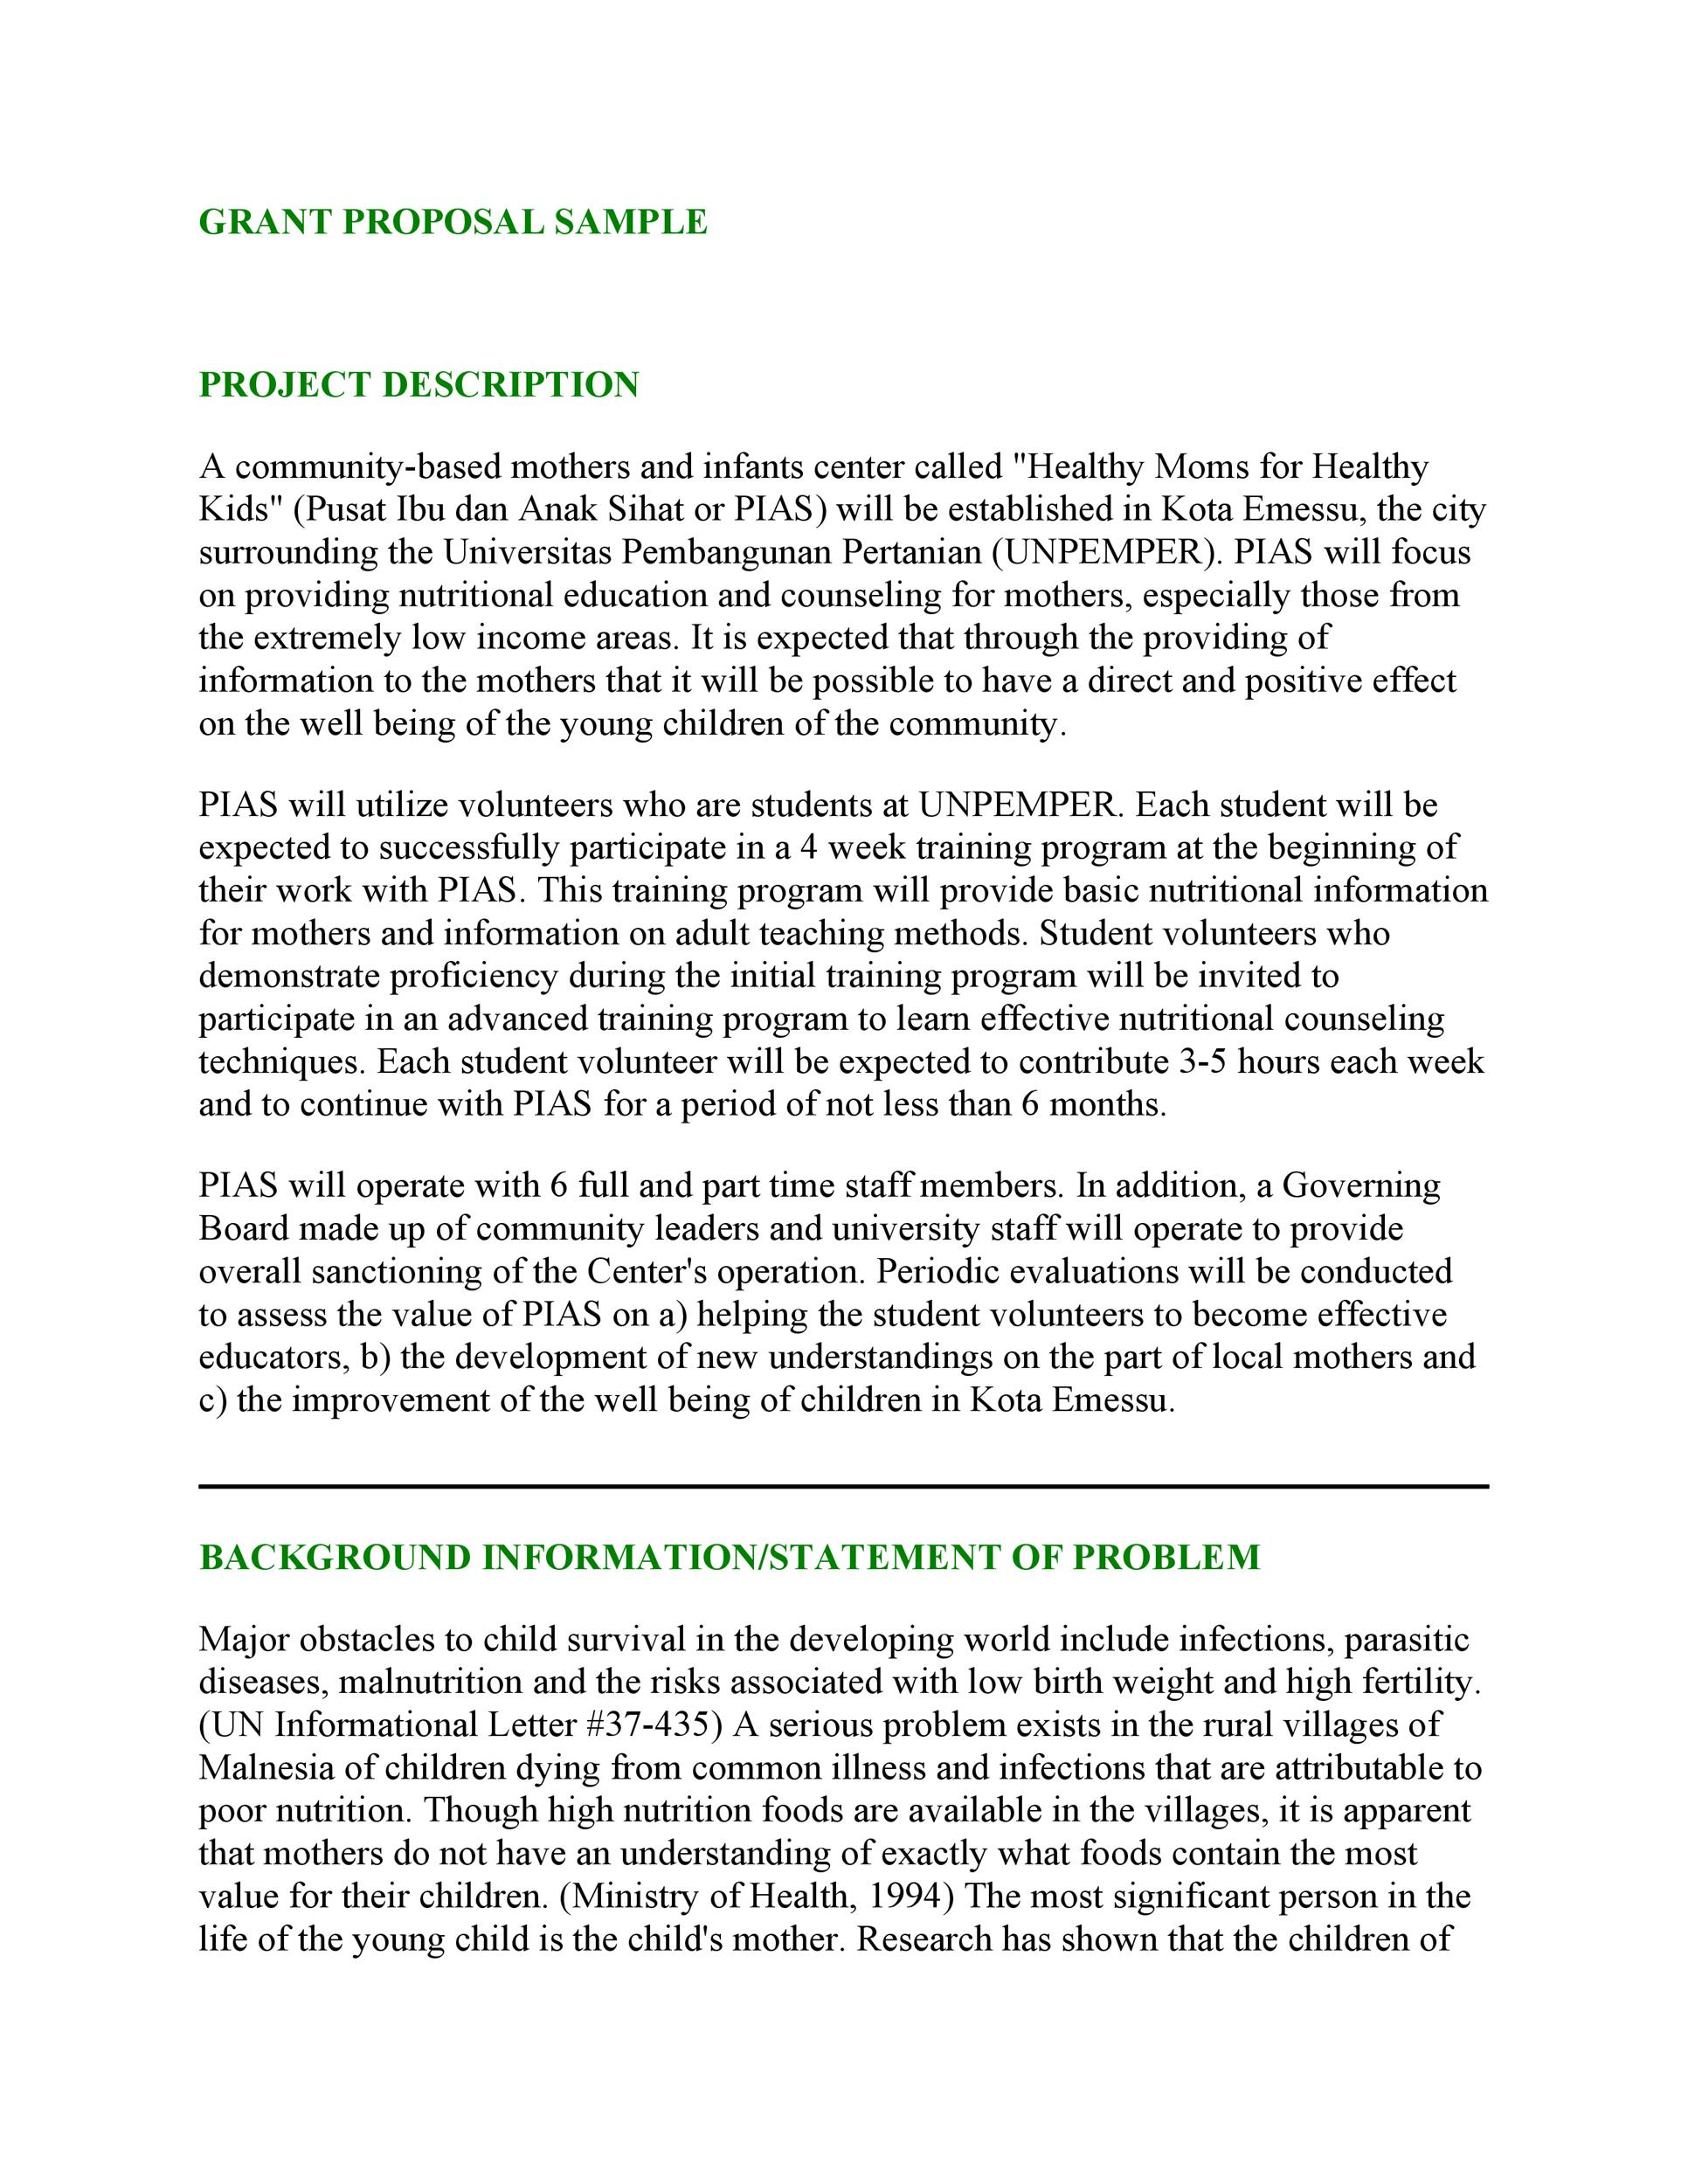 nsf research proposal example The national science foundation  introduced a proposal to reduce the nsf social  it was announced that trump would cut nsf research funding by 30%.